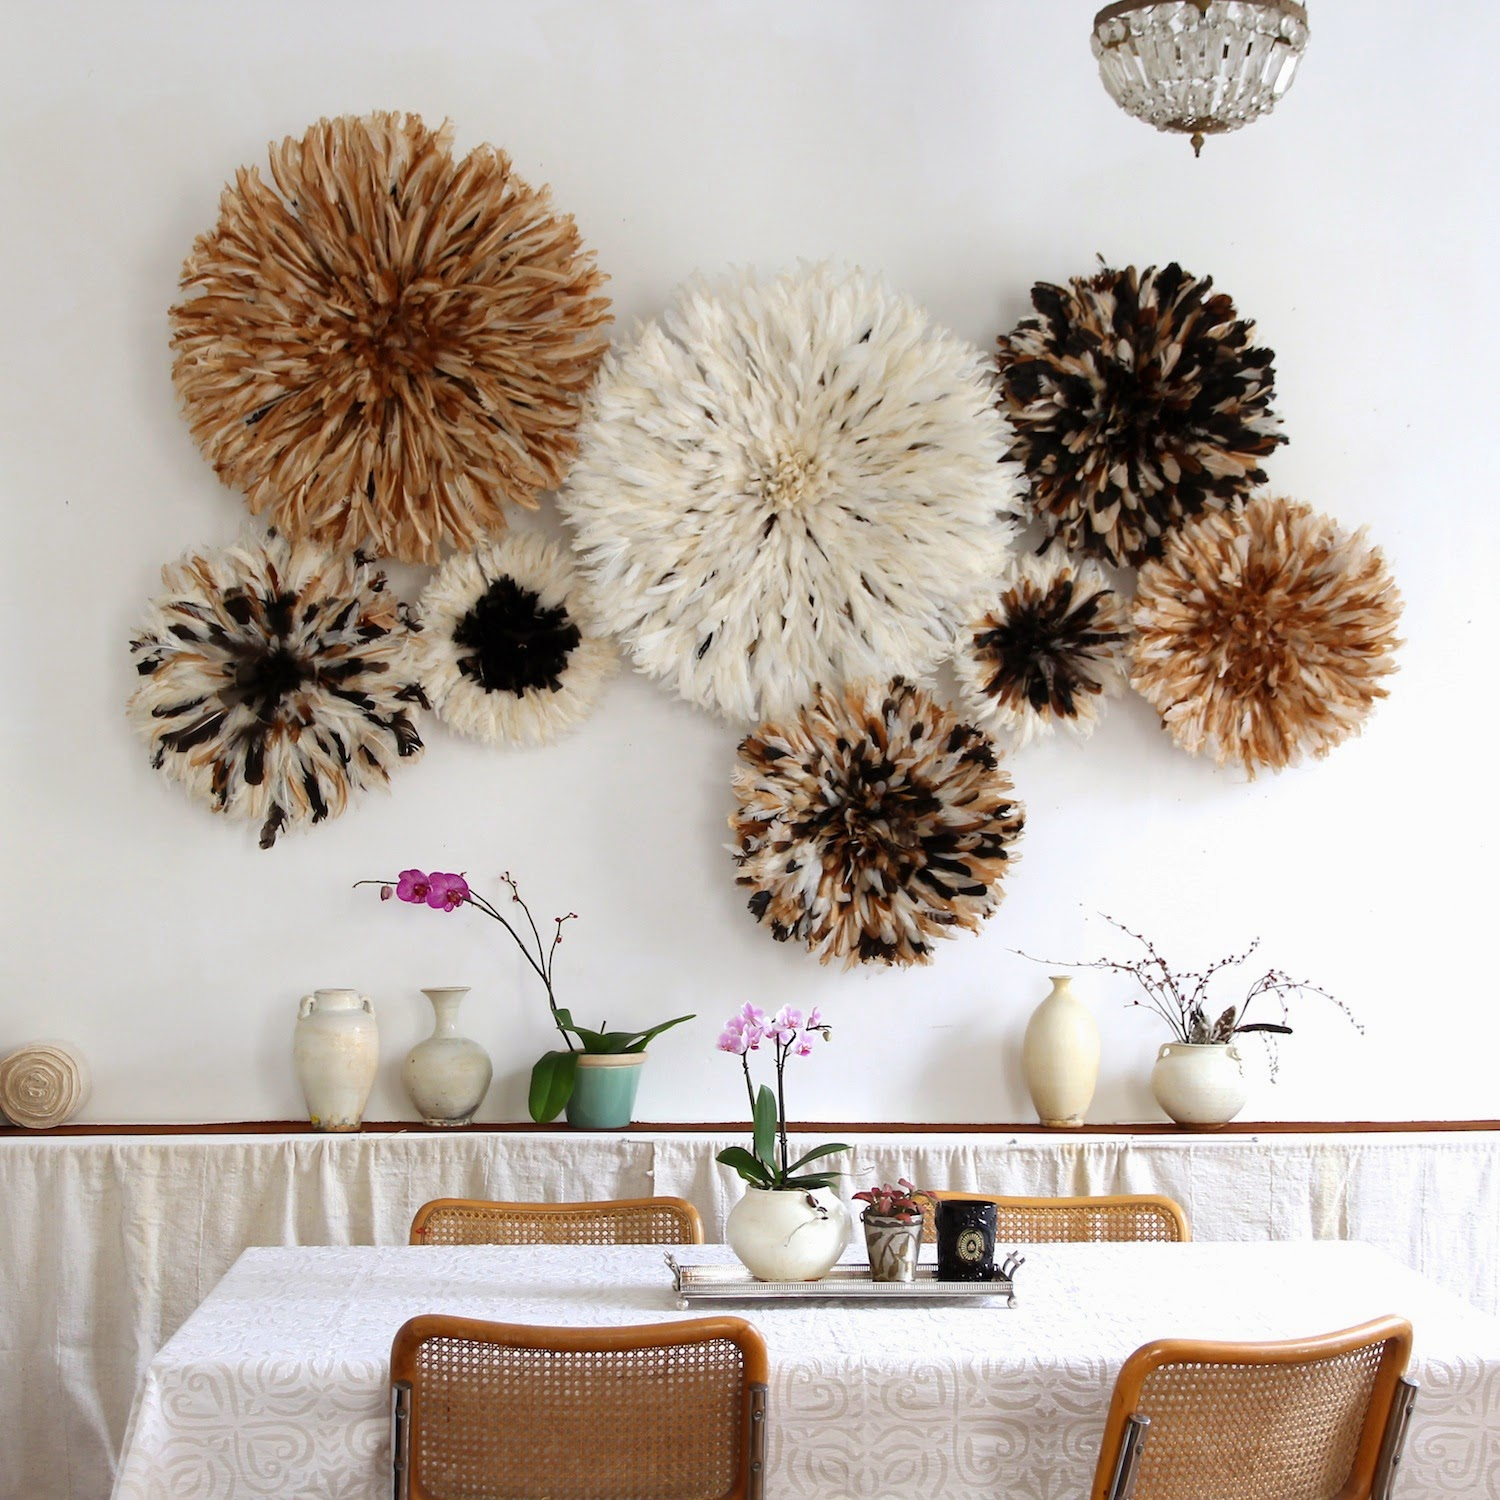 Morrocan Bedroom 20 Ways To Decorate With African Juju Hats Glitter Inc